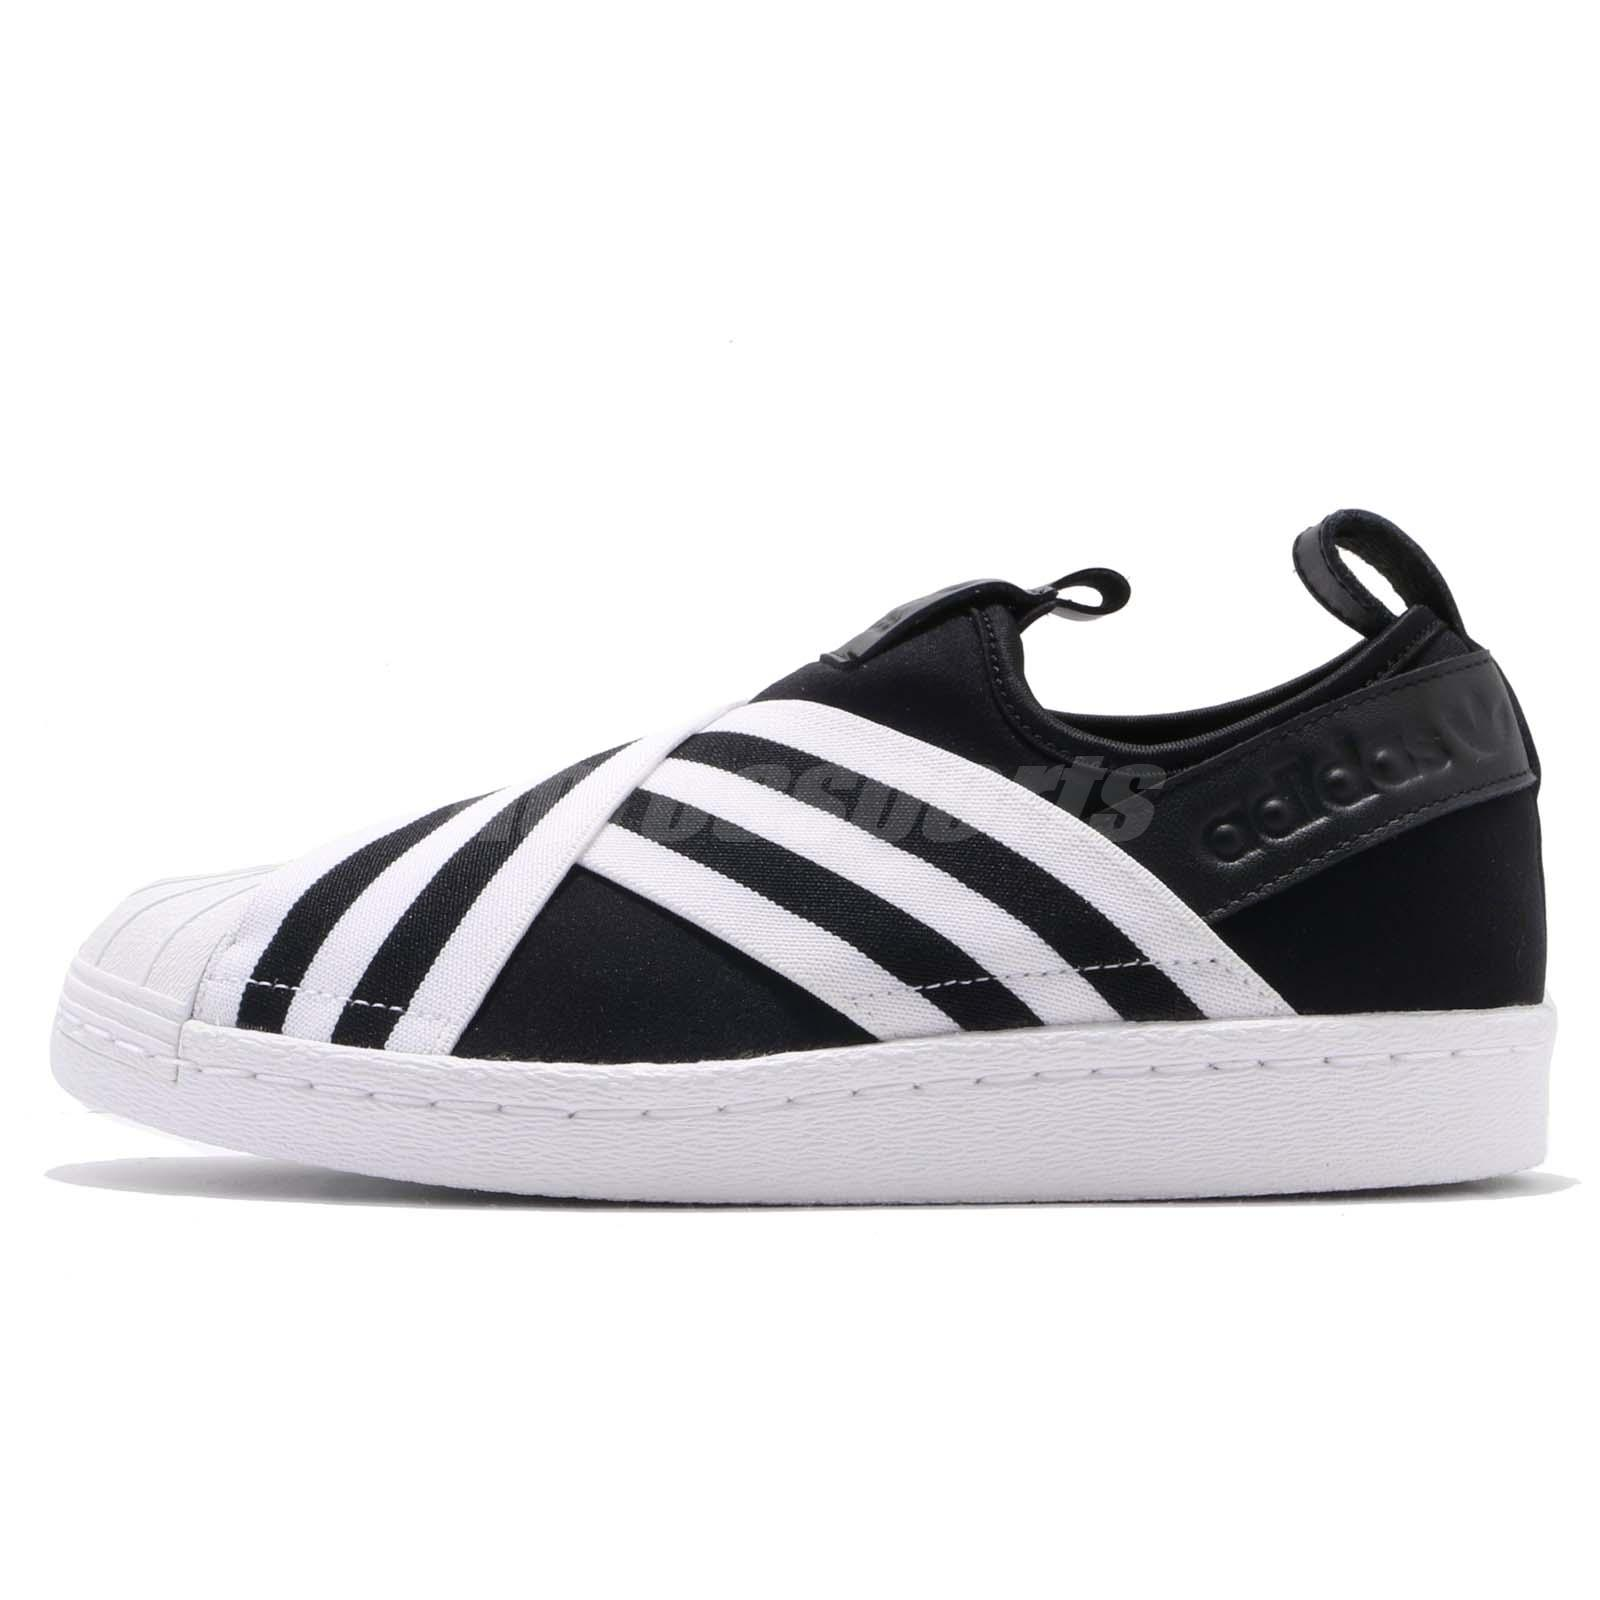 e3811770ef7 adidas Originals Superstar Slip On W Core Black Cloud White Women Shoes  AC8582